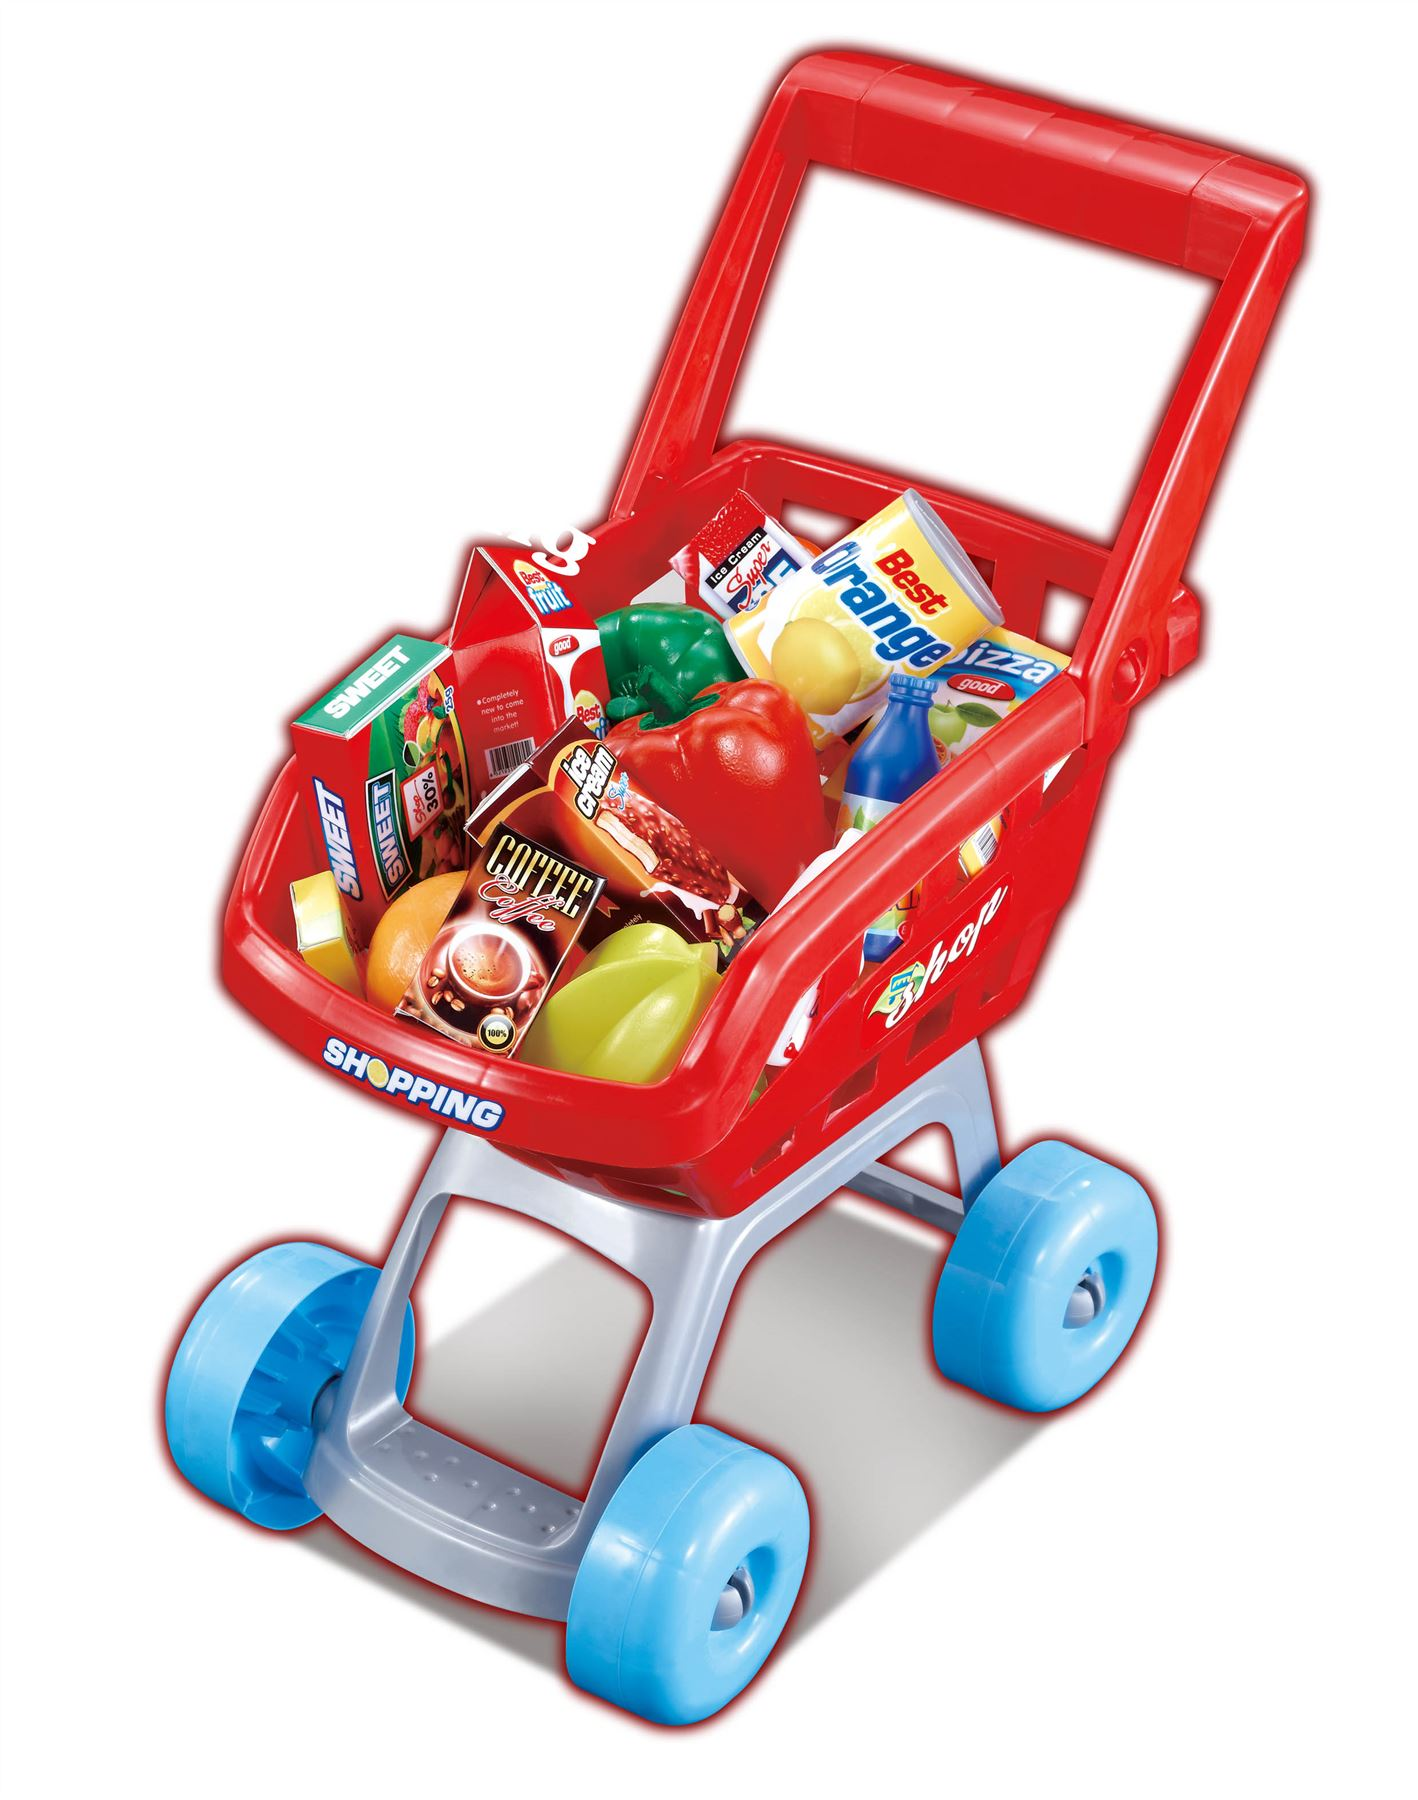 Childrens Kids Pretend Play Supermarket Food Grocery Shopping